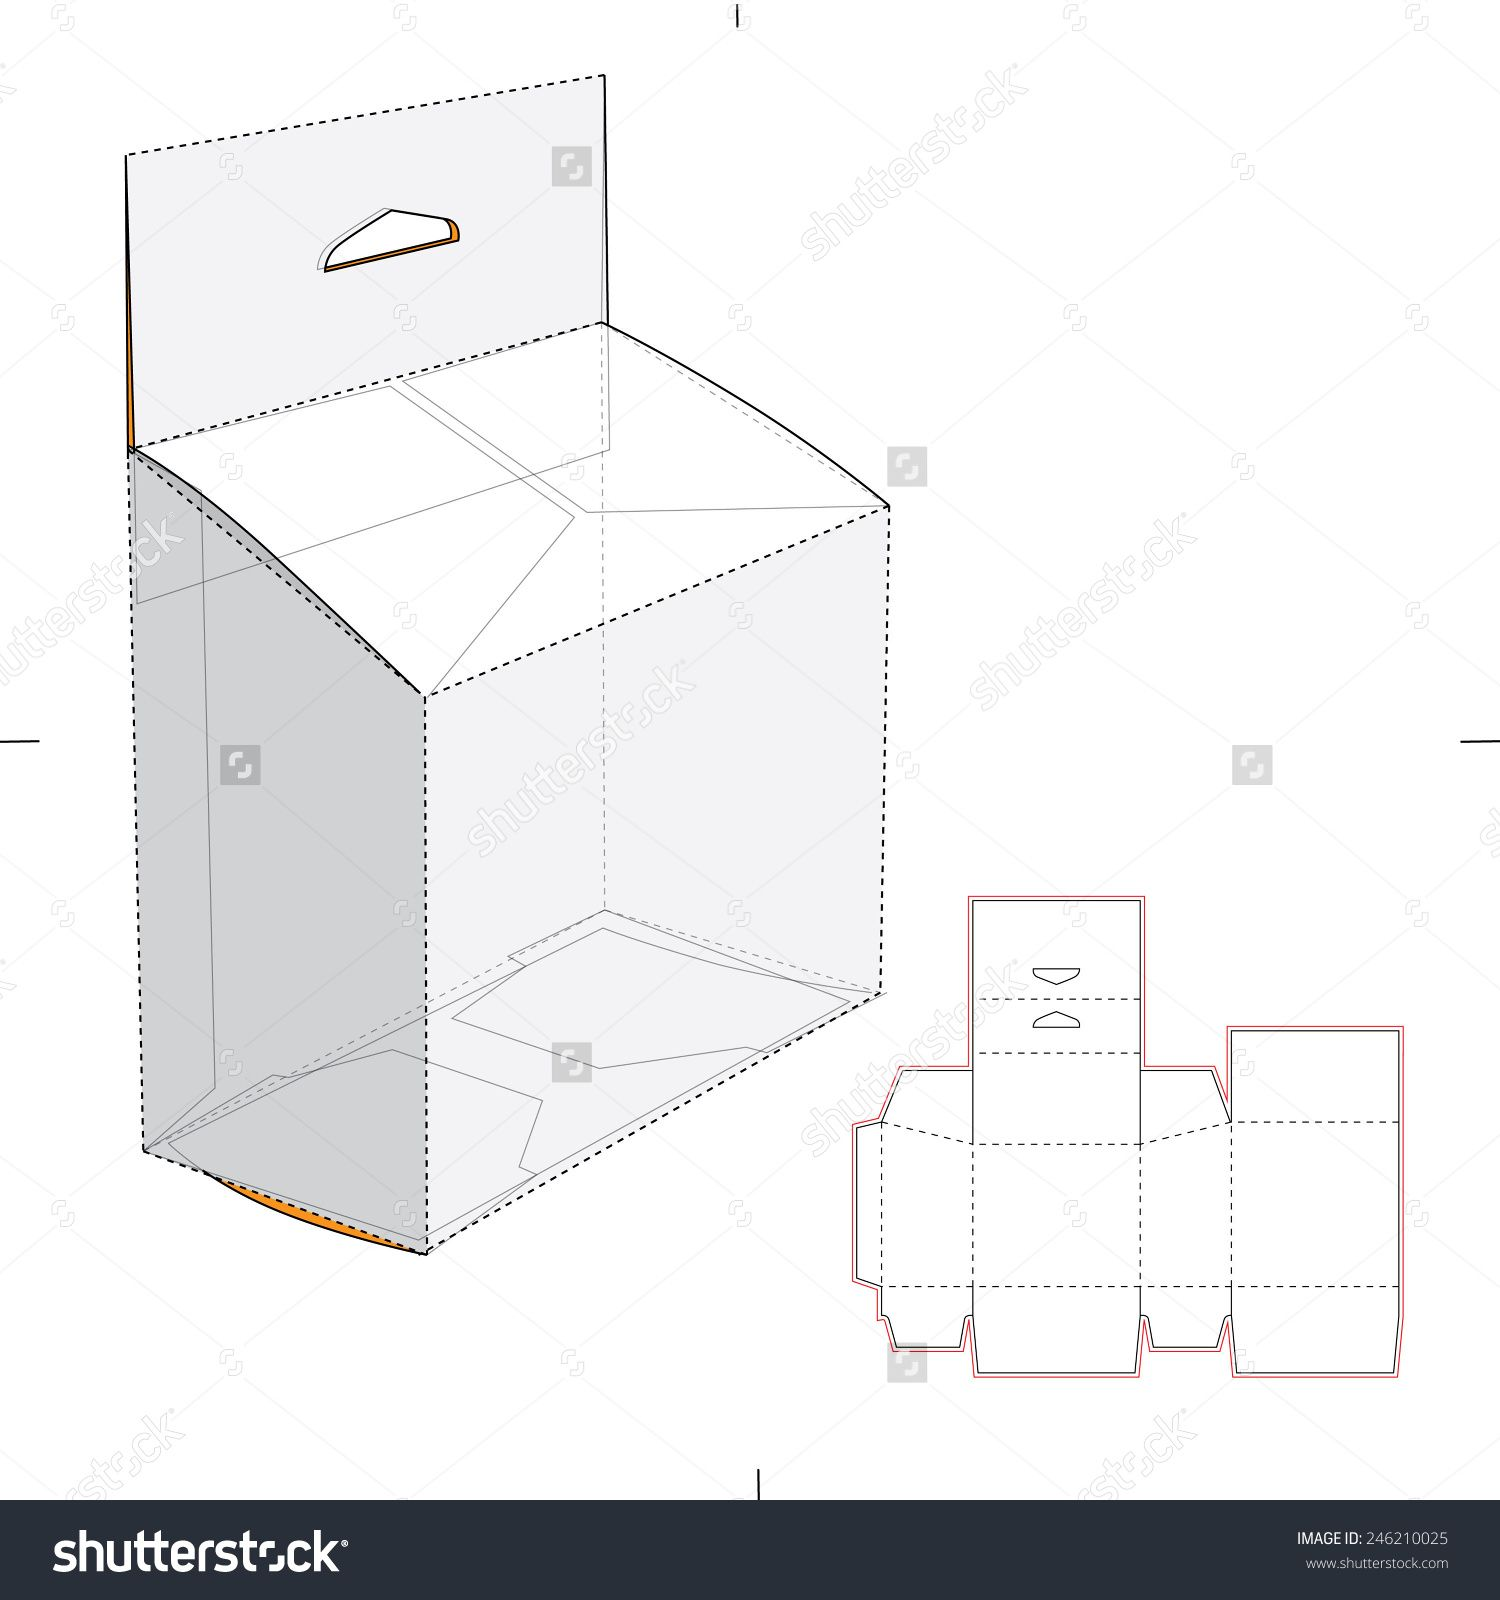 Slanted Box With Hang Tag And Die Cut Template Stock Vector